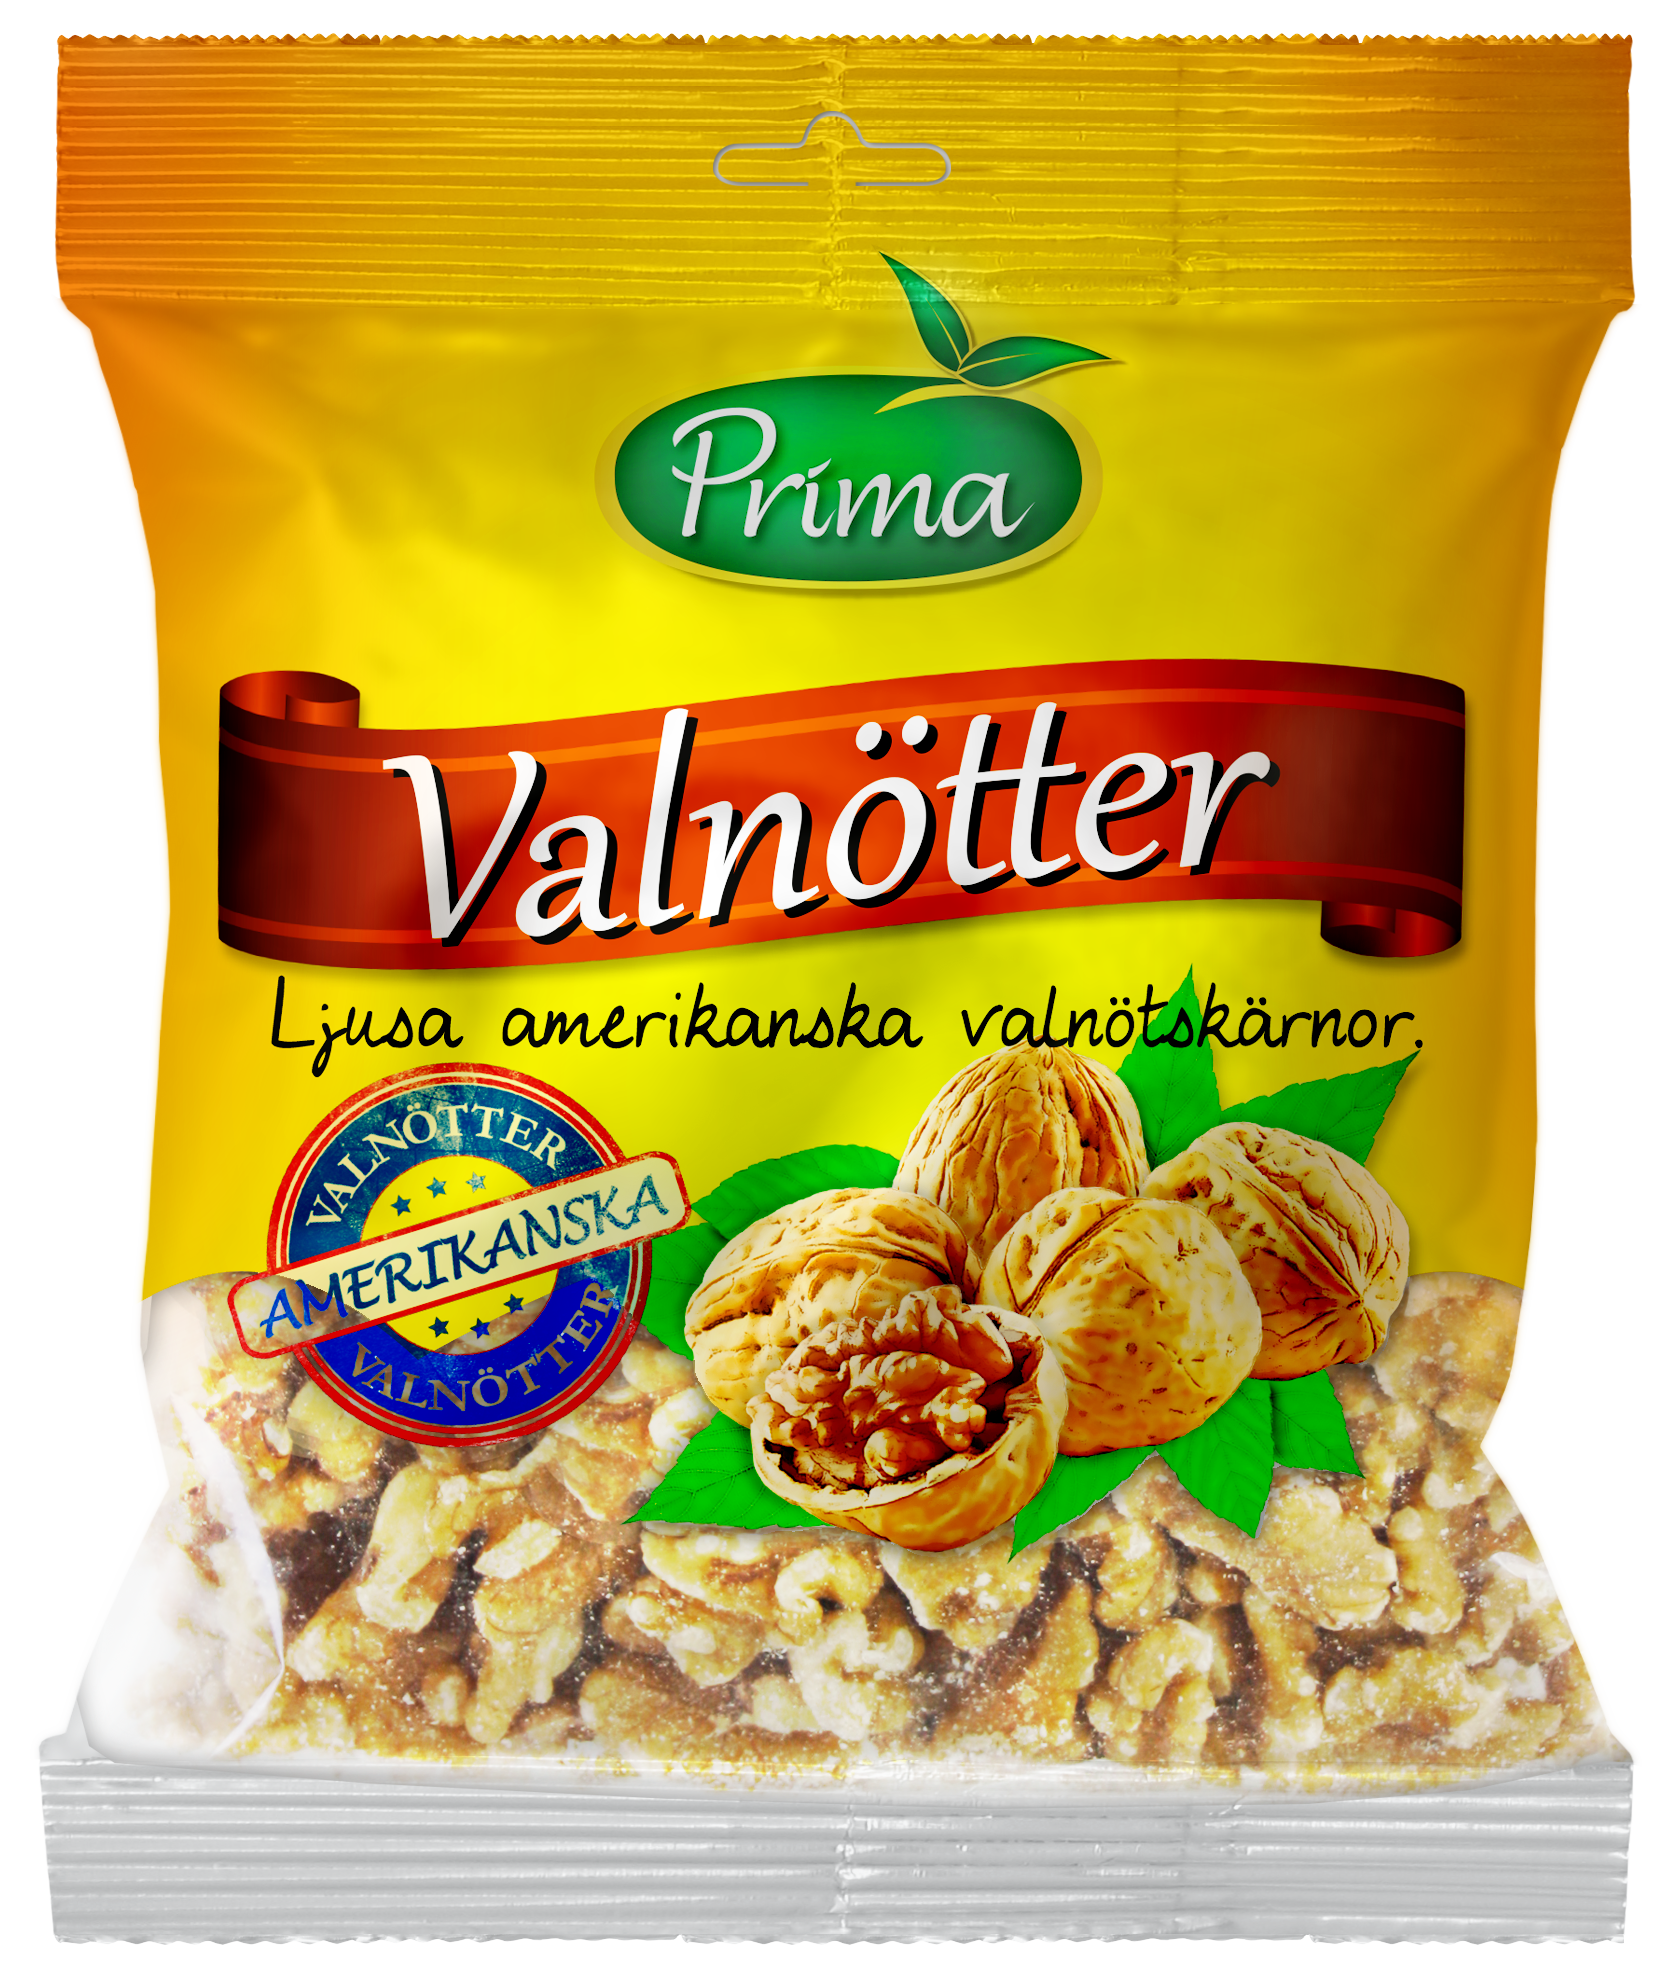 WALNUTS - Walnuts from sunny California, in halves and pieces. The bag contain 300 g.Ingredients:Natural walnut kernels.Nutritional value per 100gEnergy 699 kcal / 2800 kJFat 62g, of which saturated fat is 5.6gCarbohydrates 13g, of which sugars 5.9gProtein 14.3 gFiber 6gSalt 0g